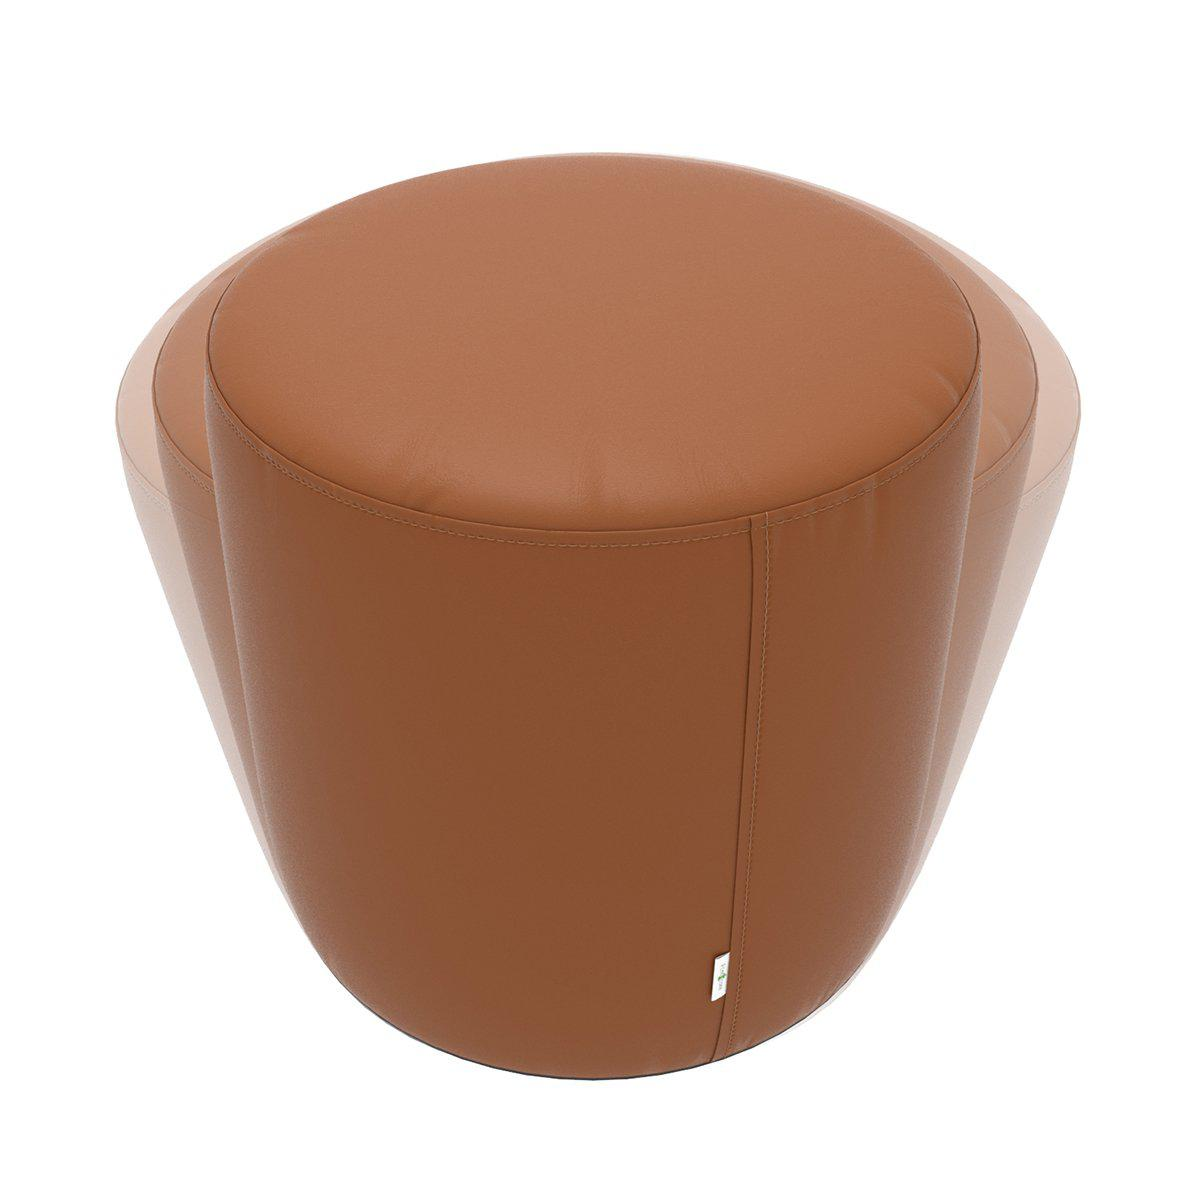 Fomcore Ottoman Series ROK with 100% ALL-FOAM CORE, Antibacterial Vinyl Seat with Patterned Vinyl Sides, LIFETIME WARRANTY